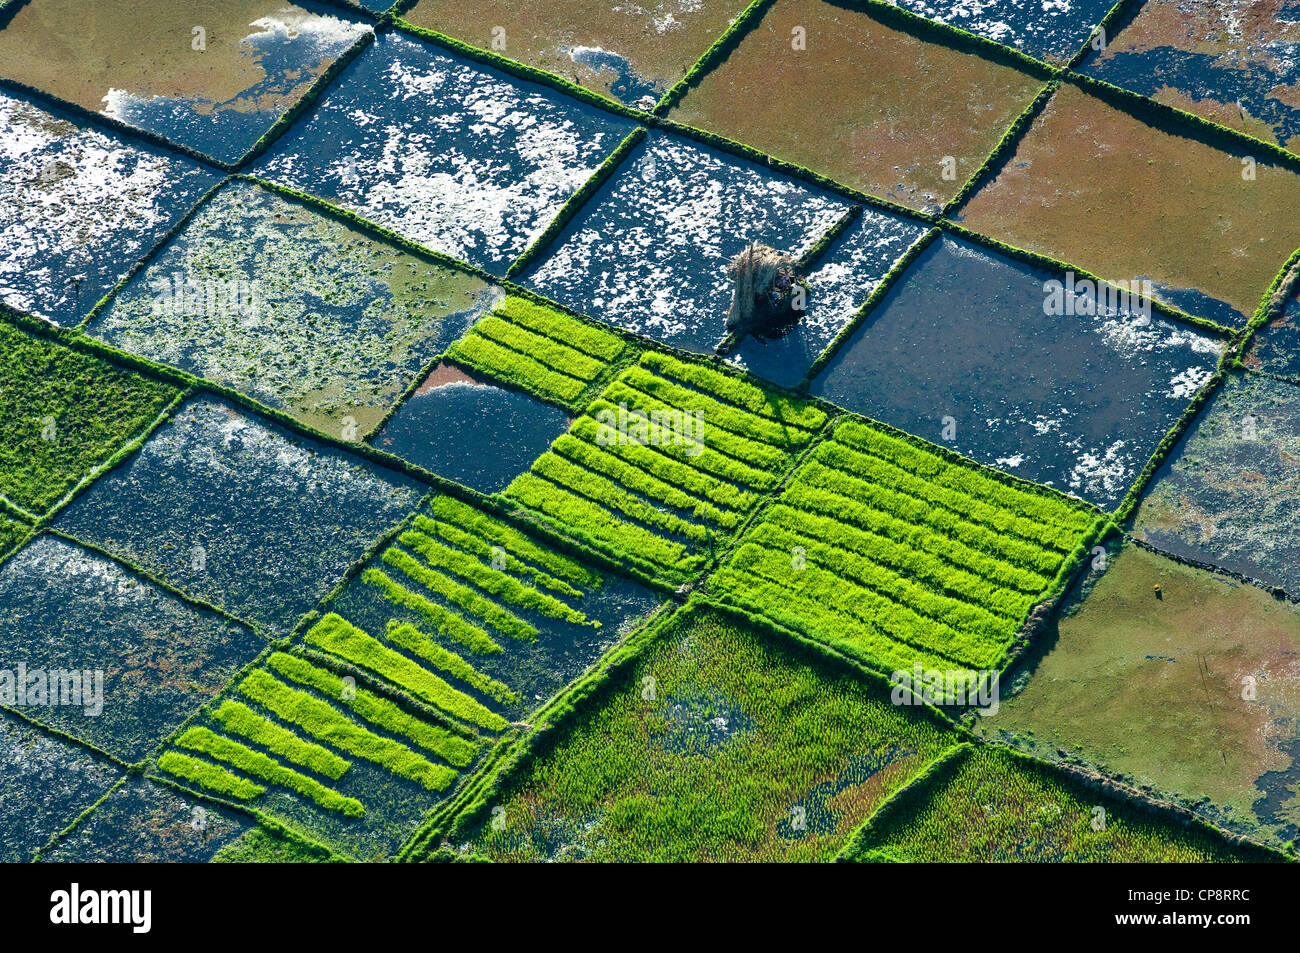 Shelter hut in paddy rice fields, aerial view, Arusha Region, Tanzania - Stock Image